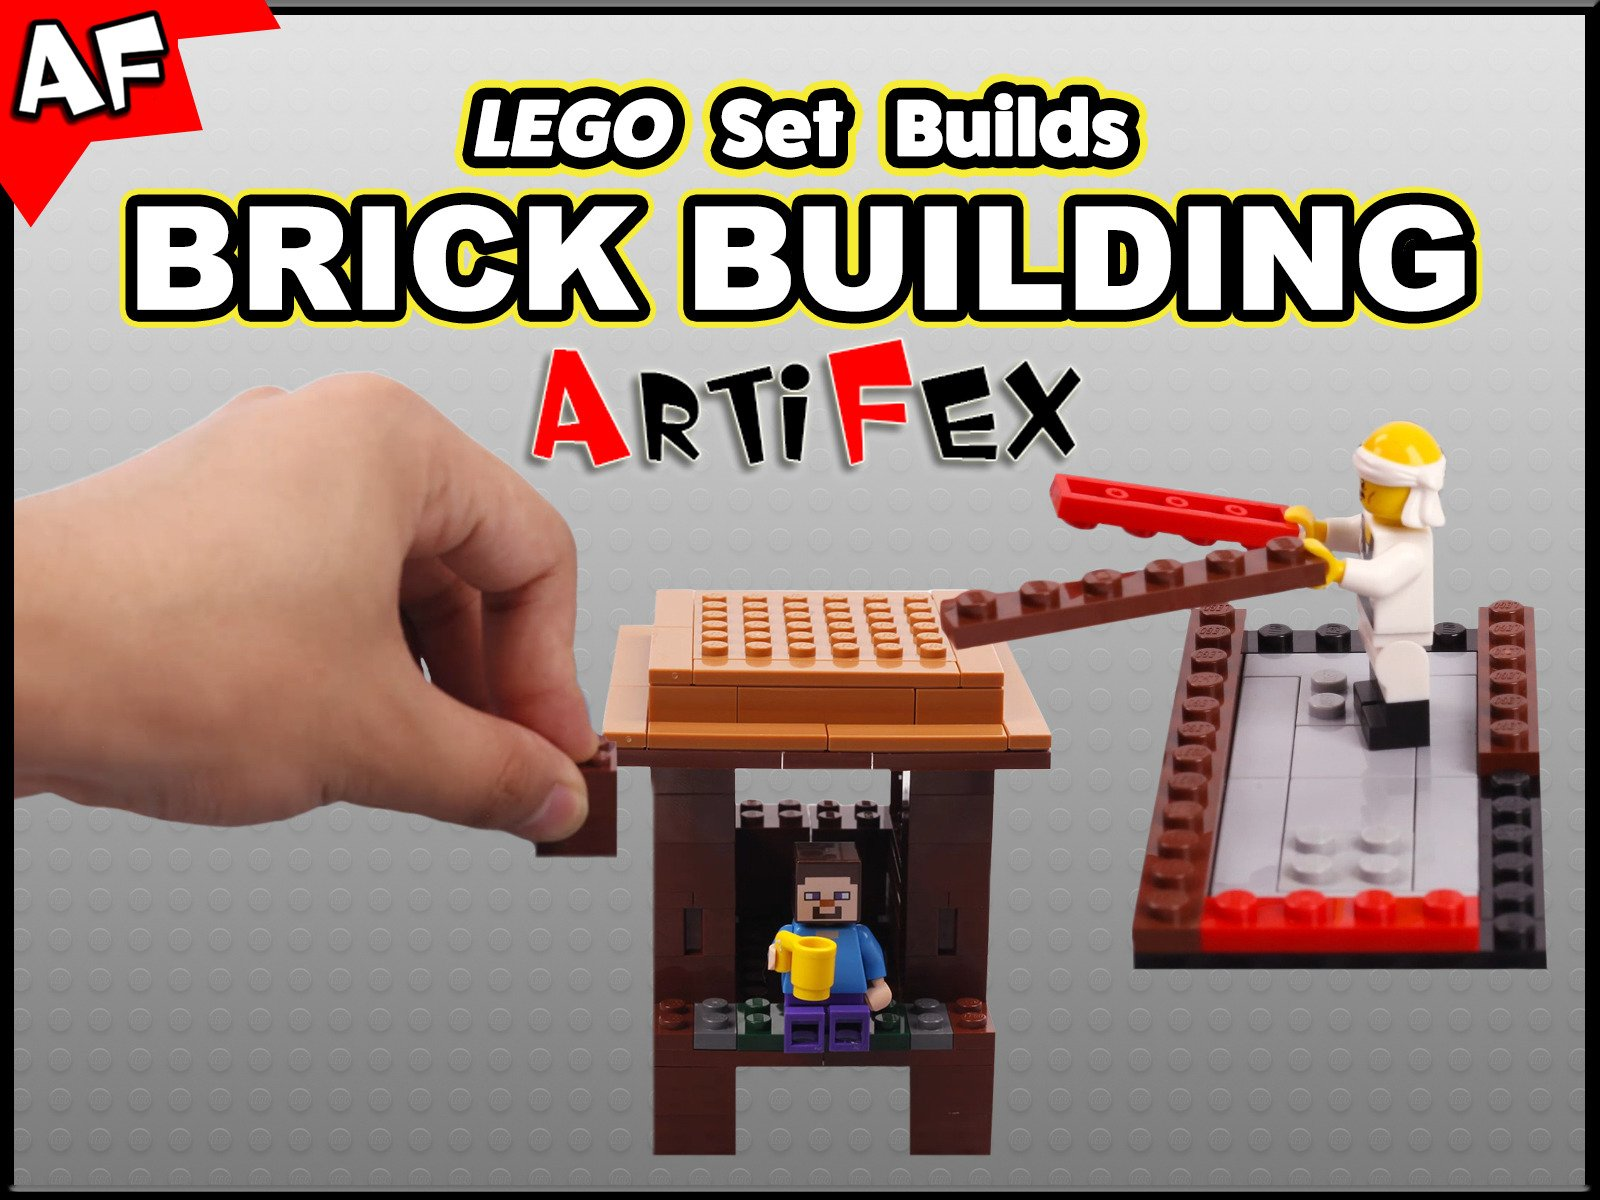 Clip: Lego Set Builds Brick Building - Season 1